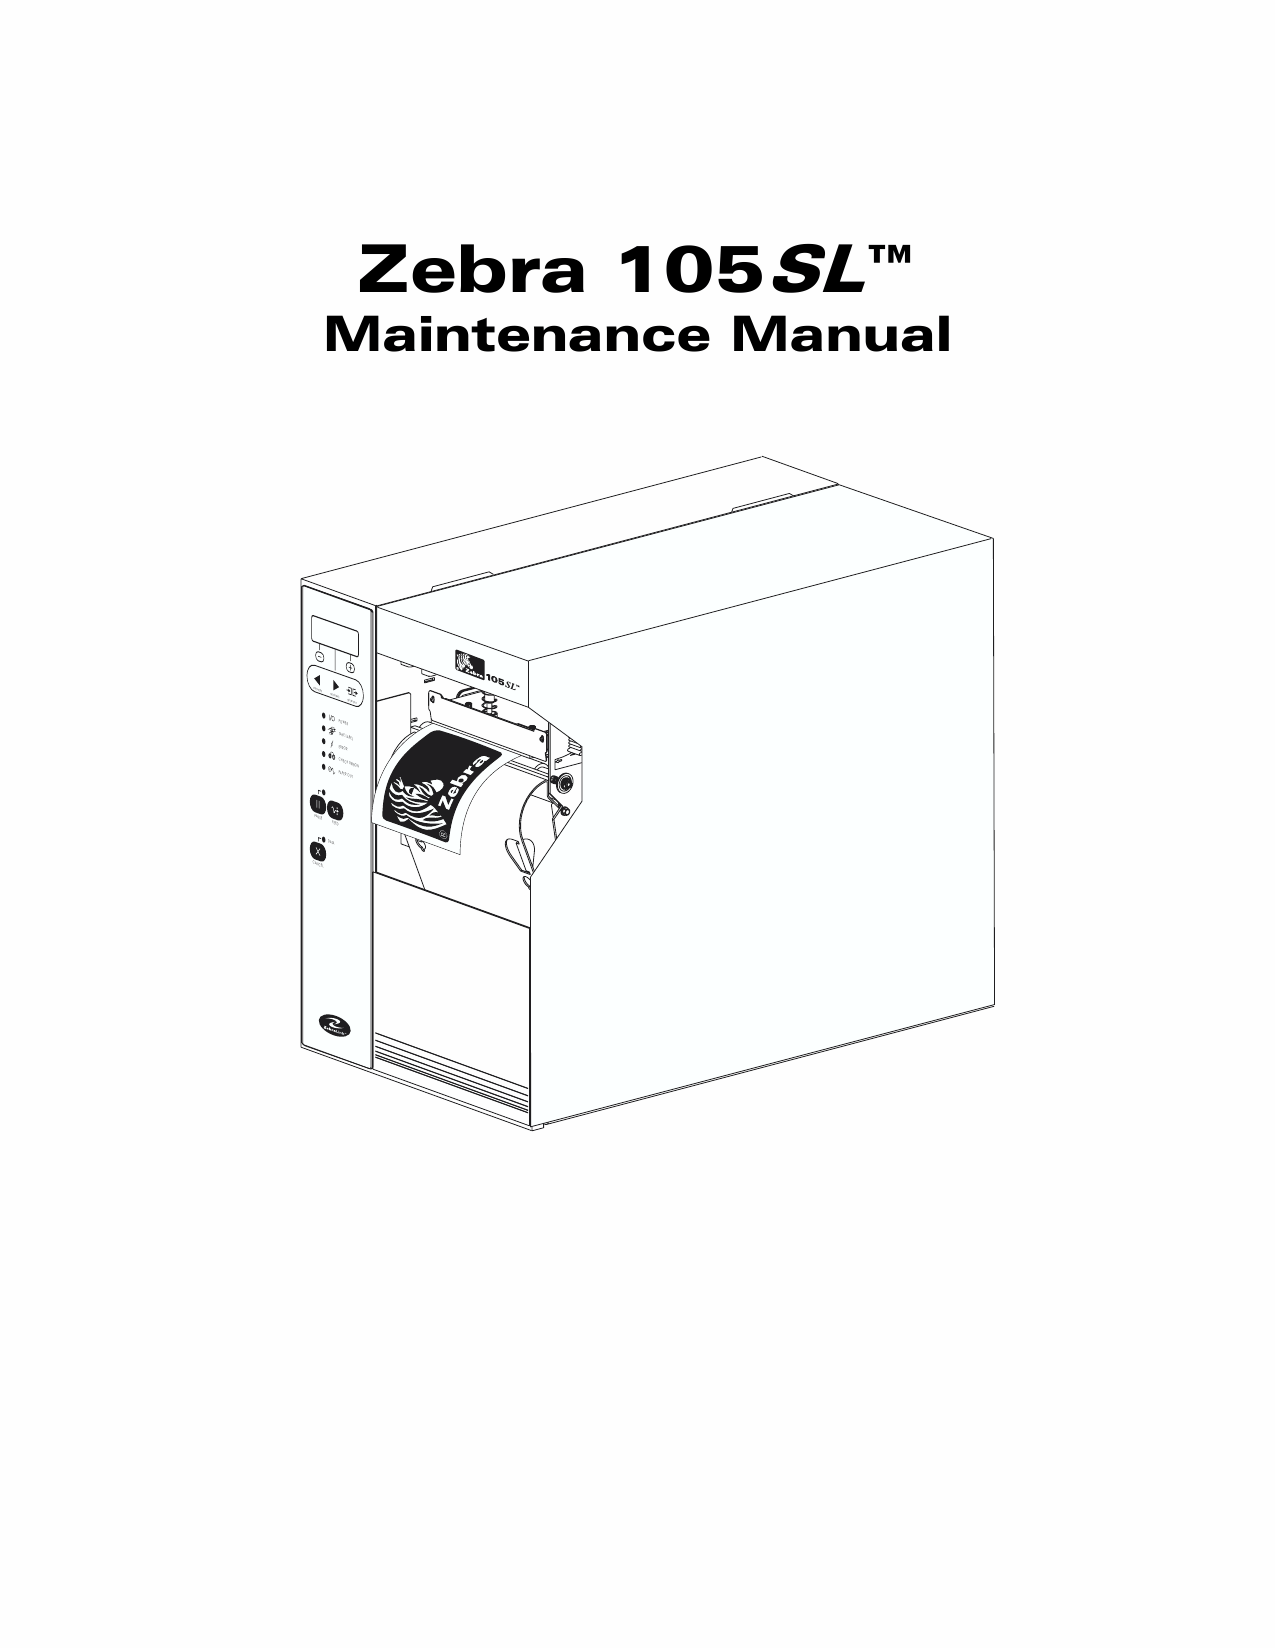 Zebra 105sl manual